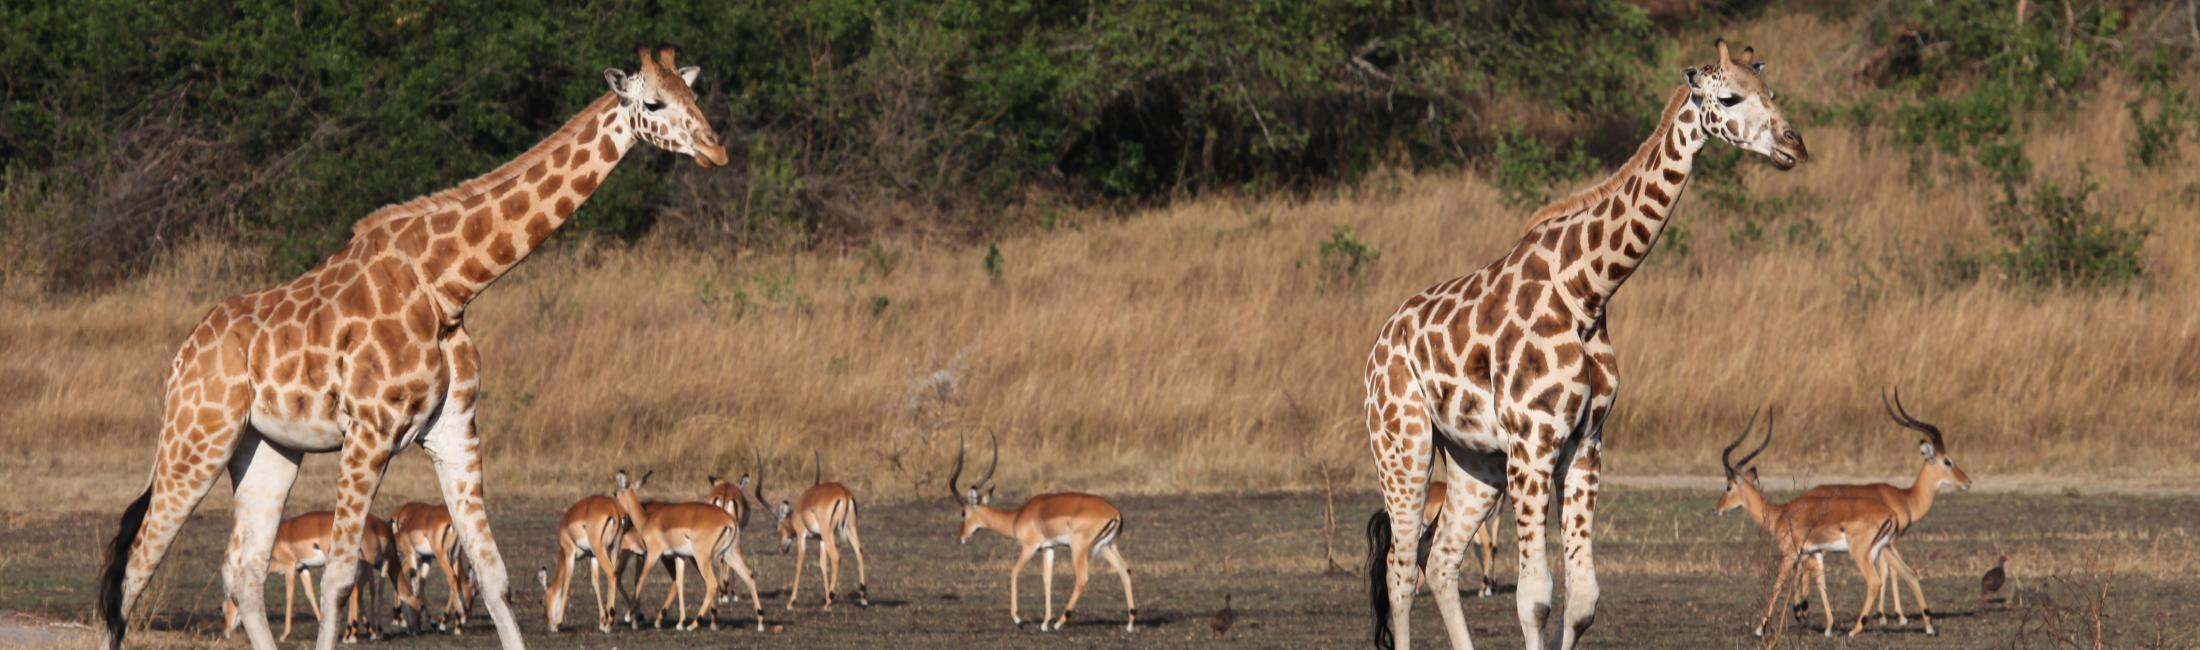 Rothschild's Giraffes with Impala Lake Mburo National Park (Uganda)